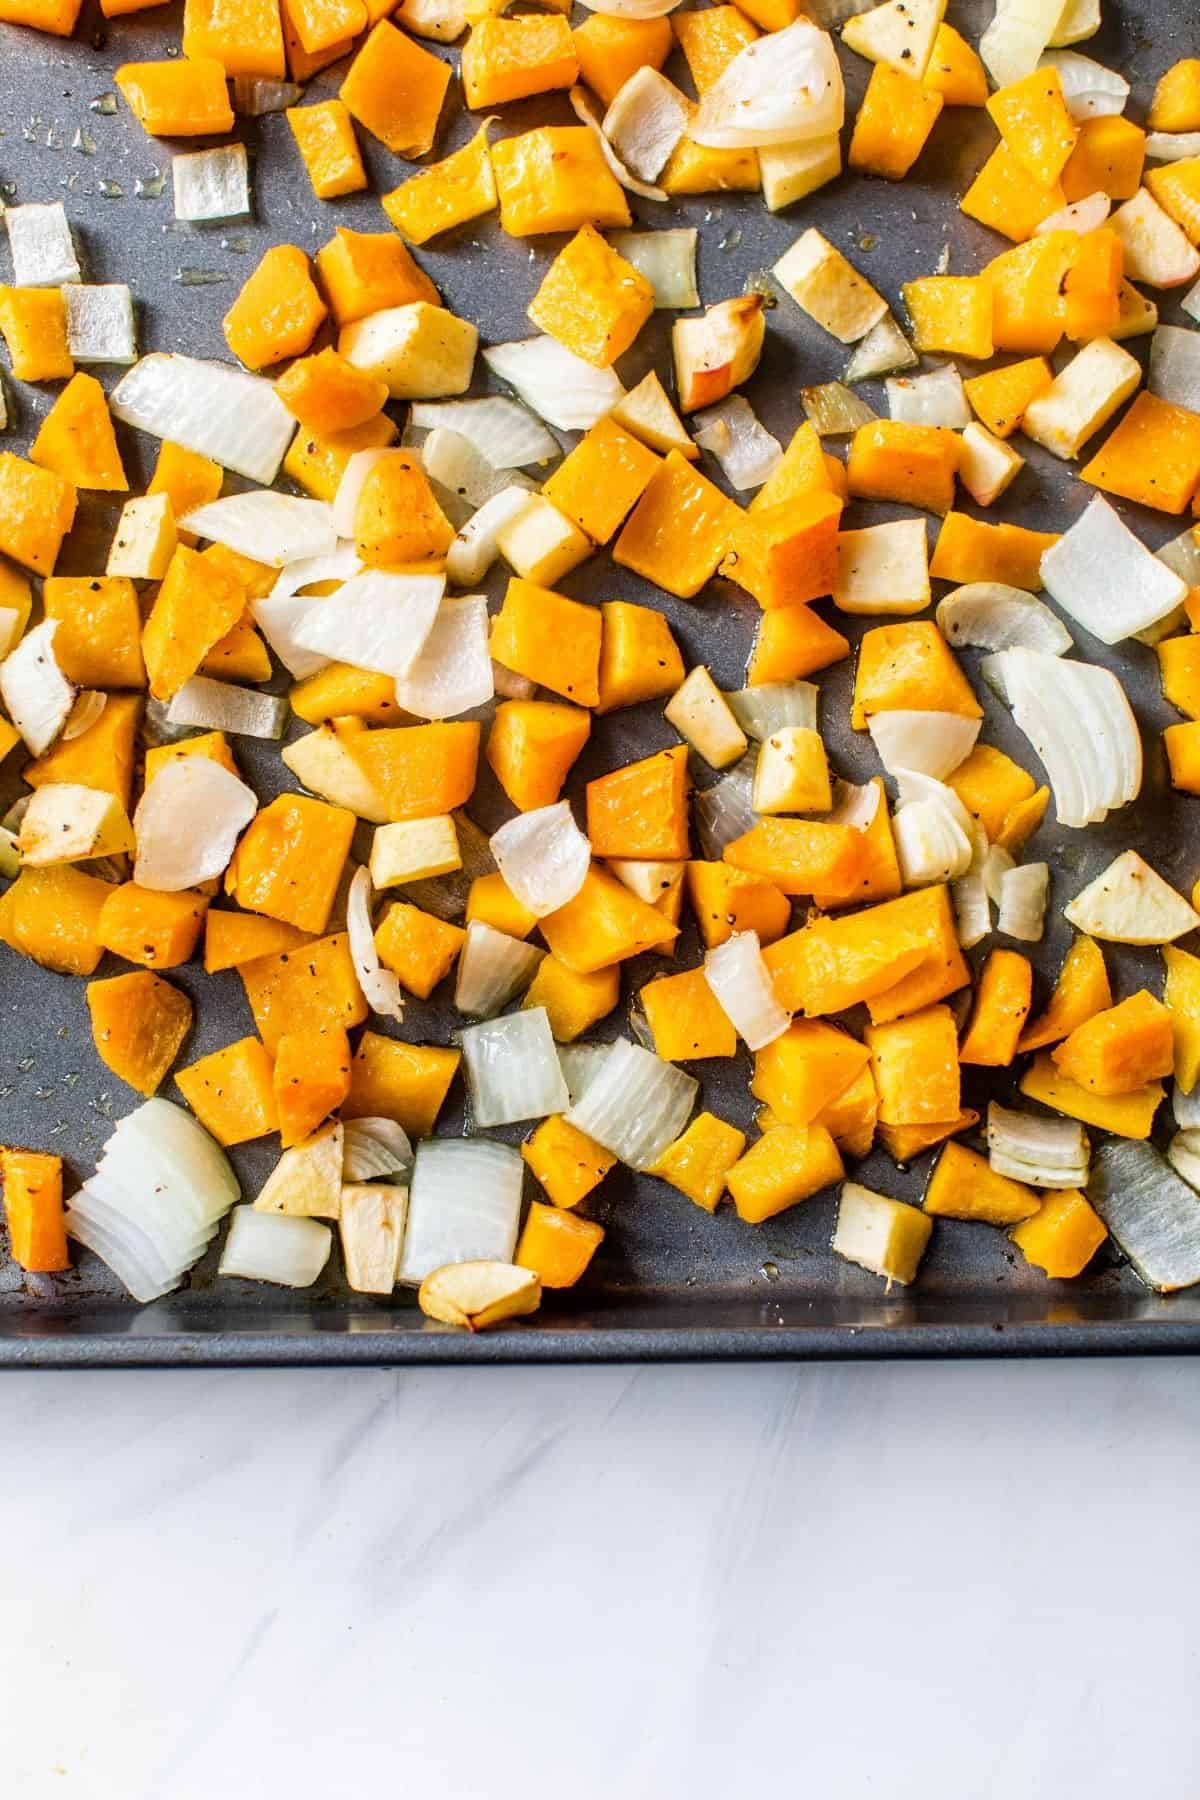 roasting butternut squash, onion and apple on a baking sheet